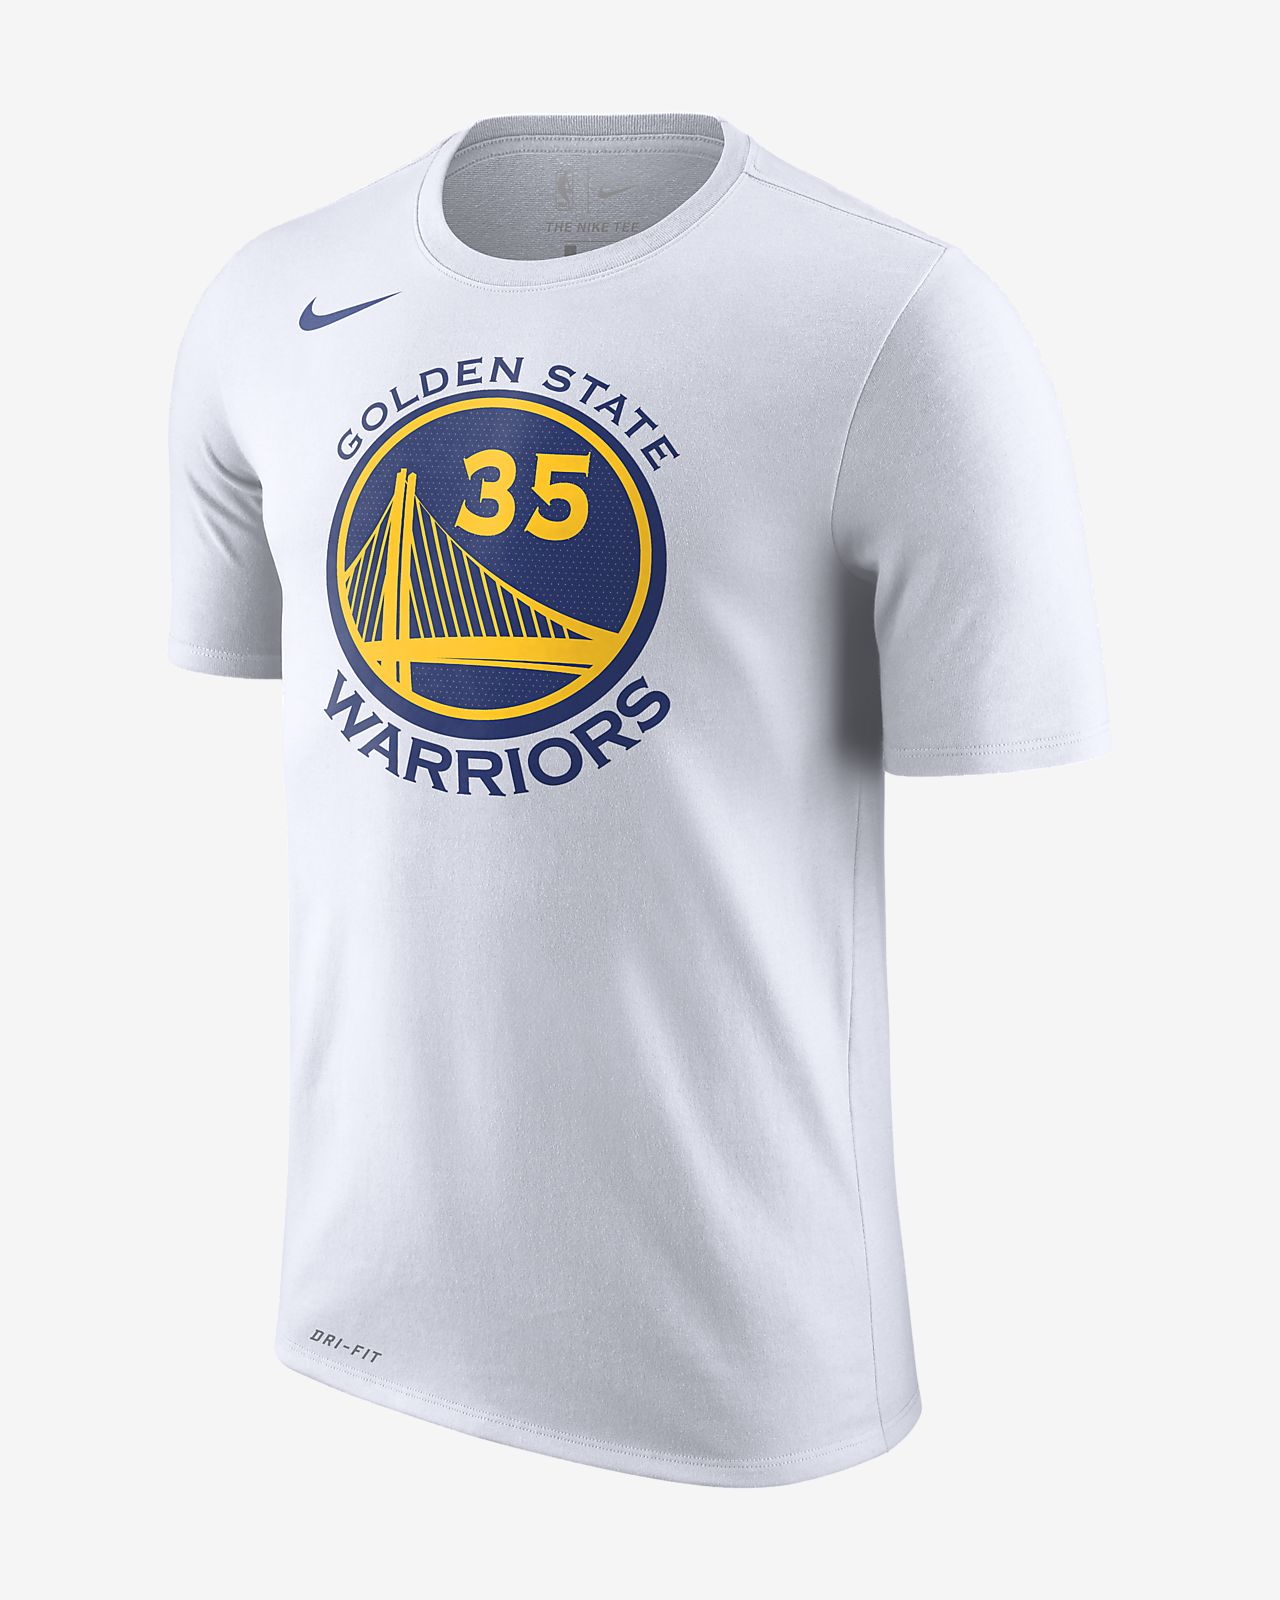 Golden State Warriors Nike Dri-FIT Men's NBA T-Shirt